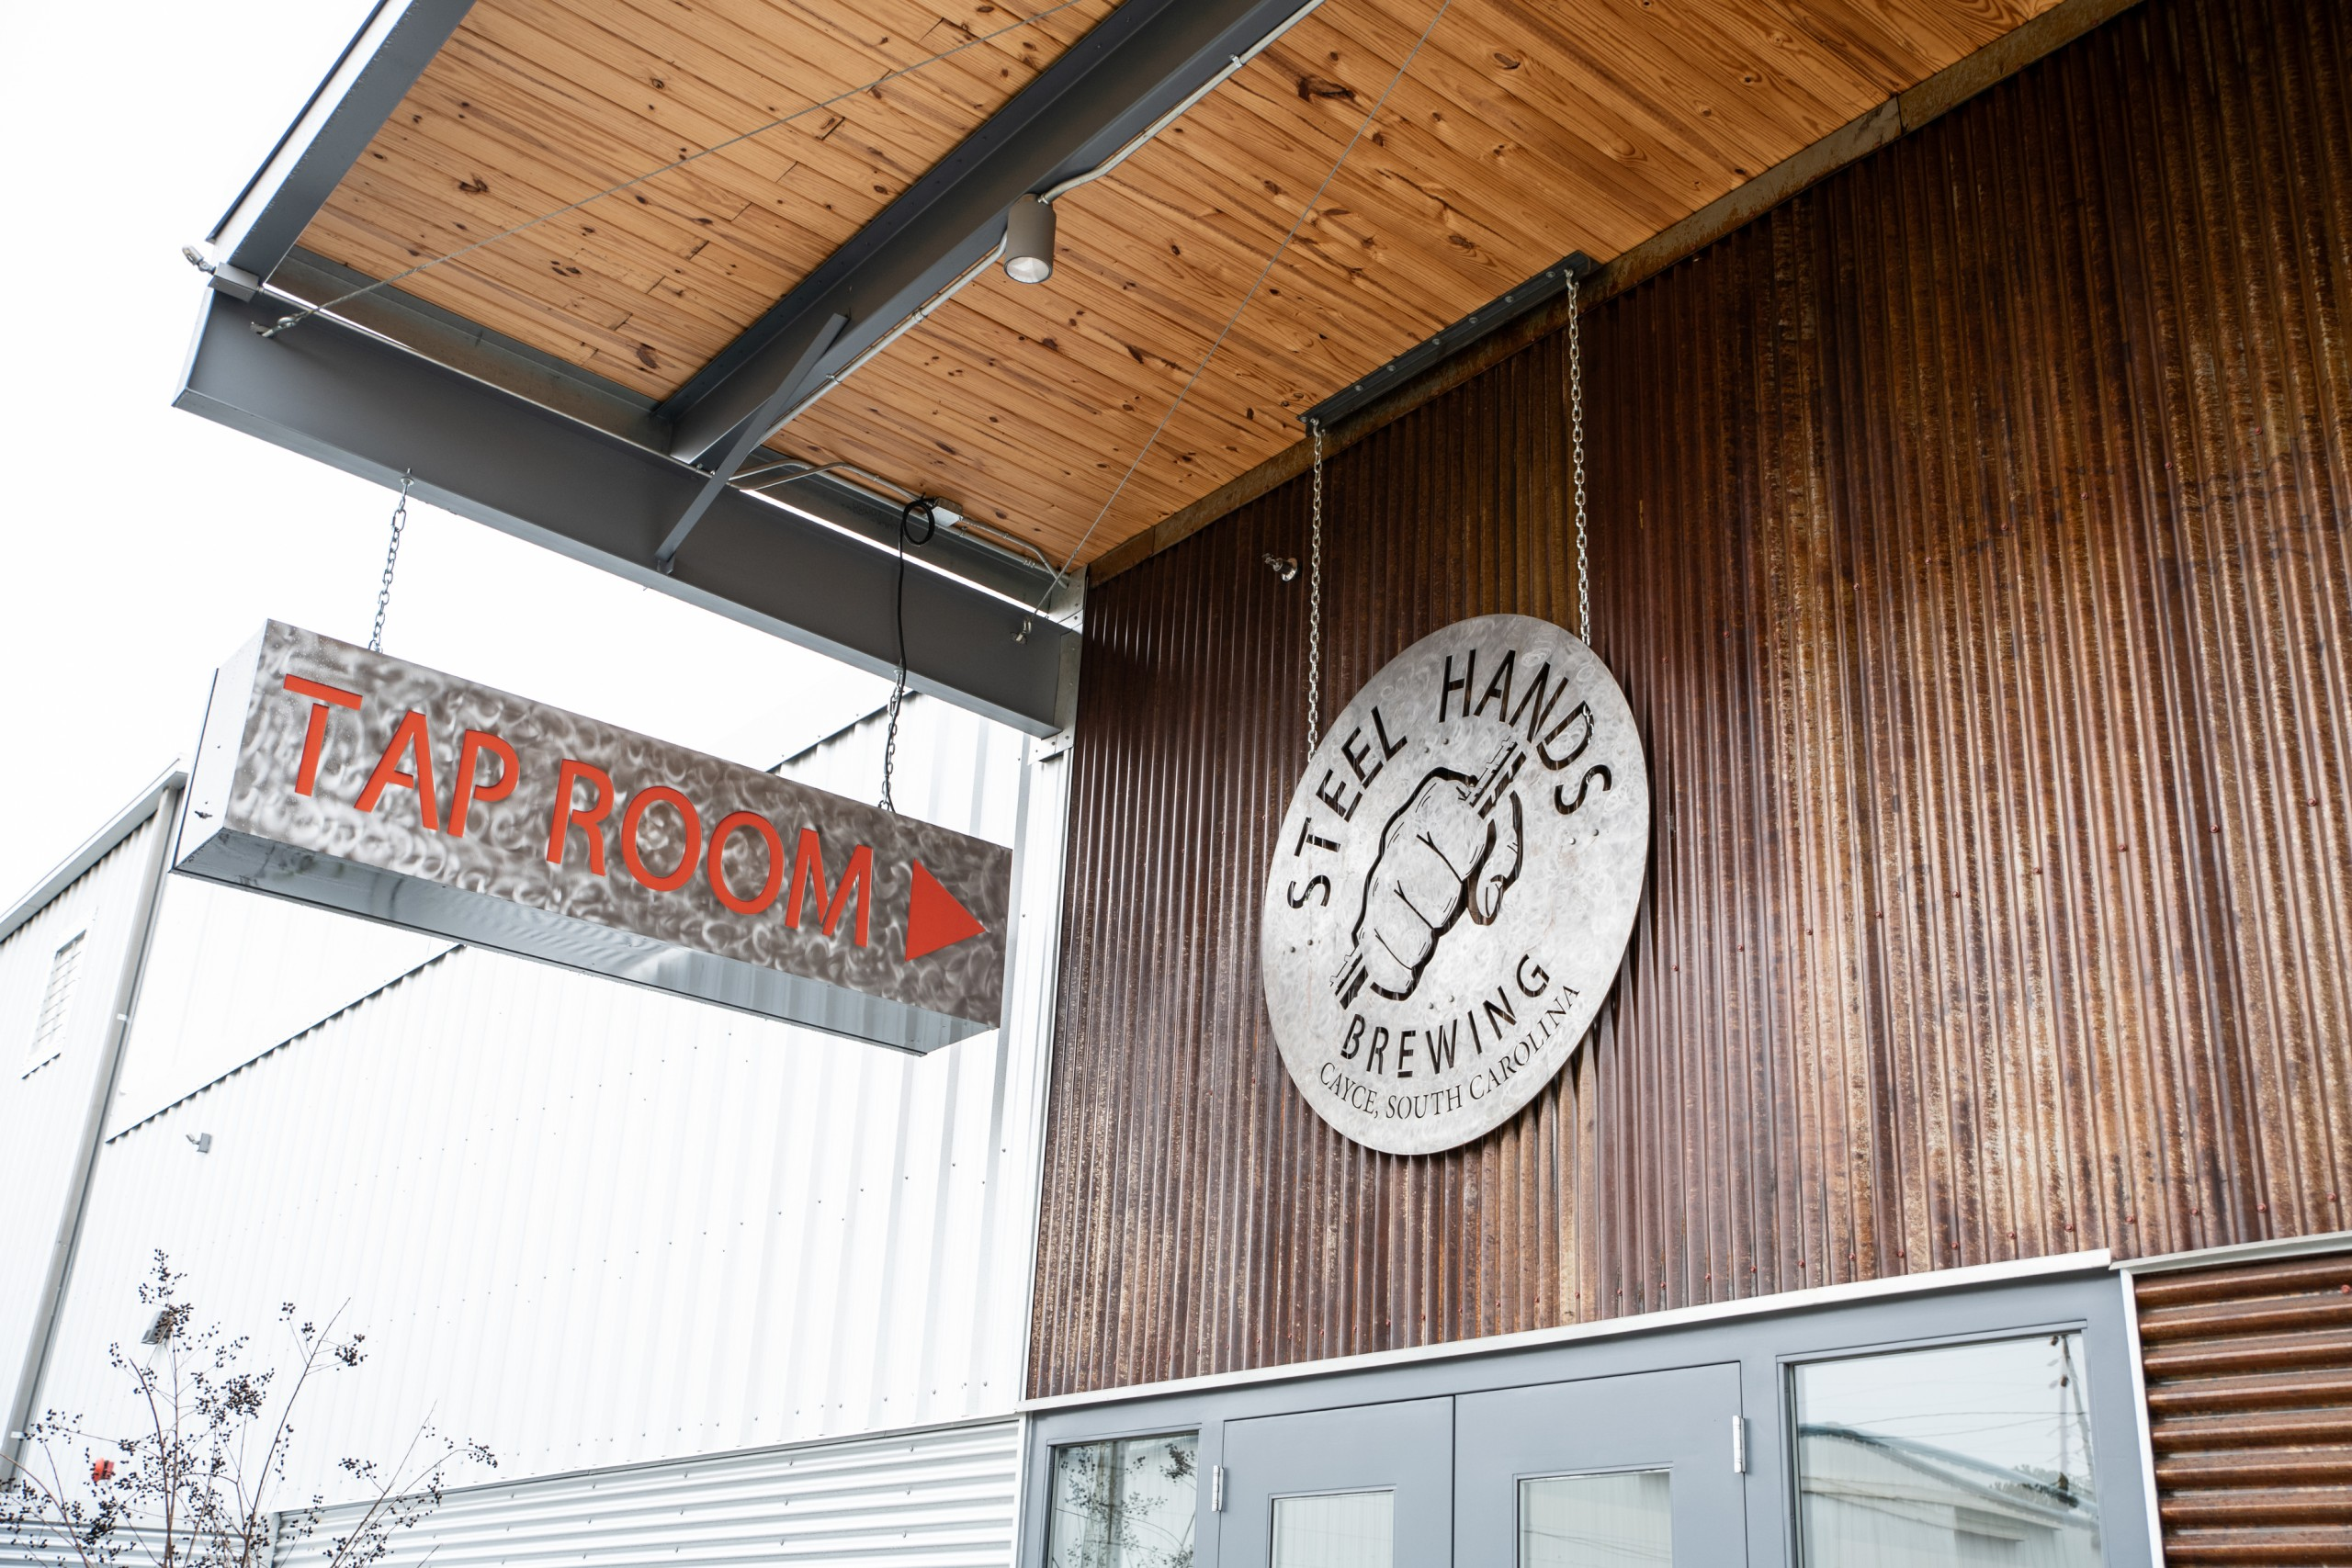 Steel Hands Brewing In Cayce South Carolina Exterior Of Steel Hands Brewing